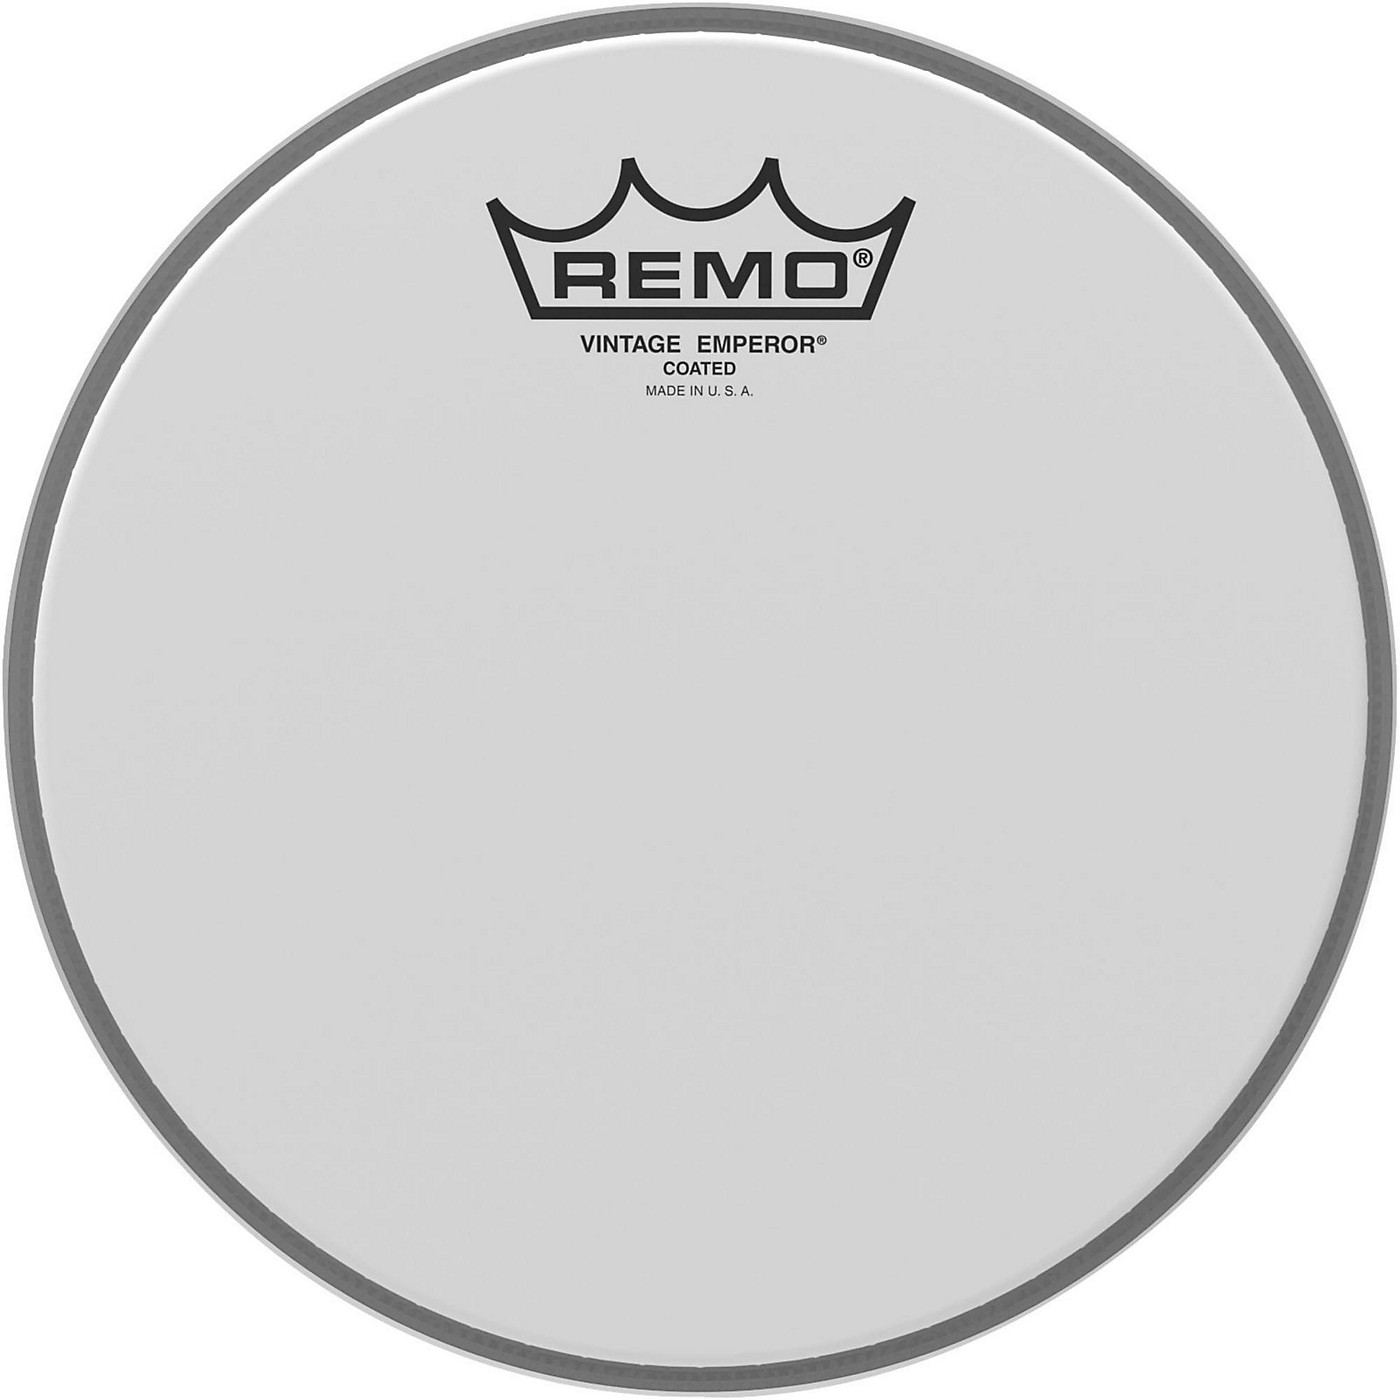 Remo Vintage Emperor Coated Drumhead thumbnail